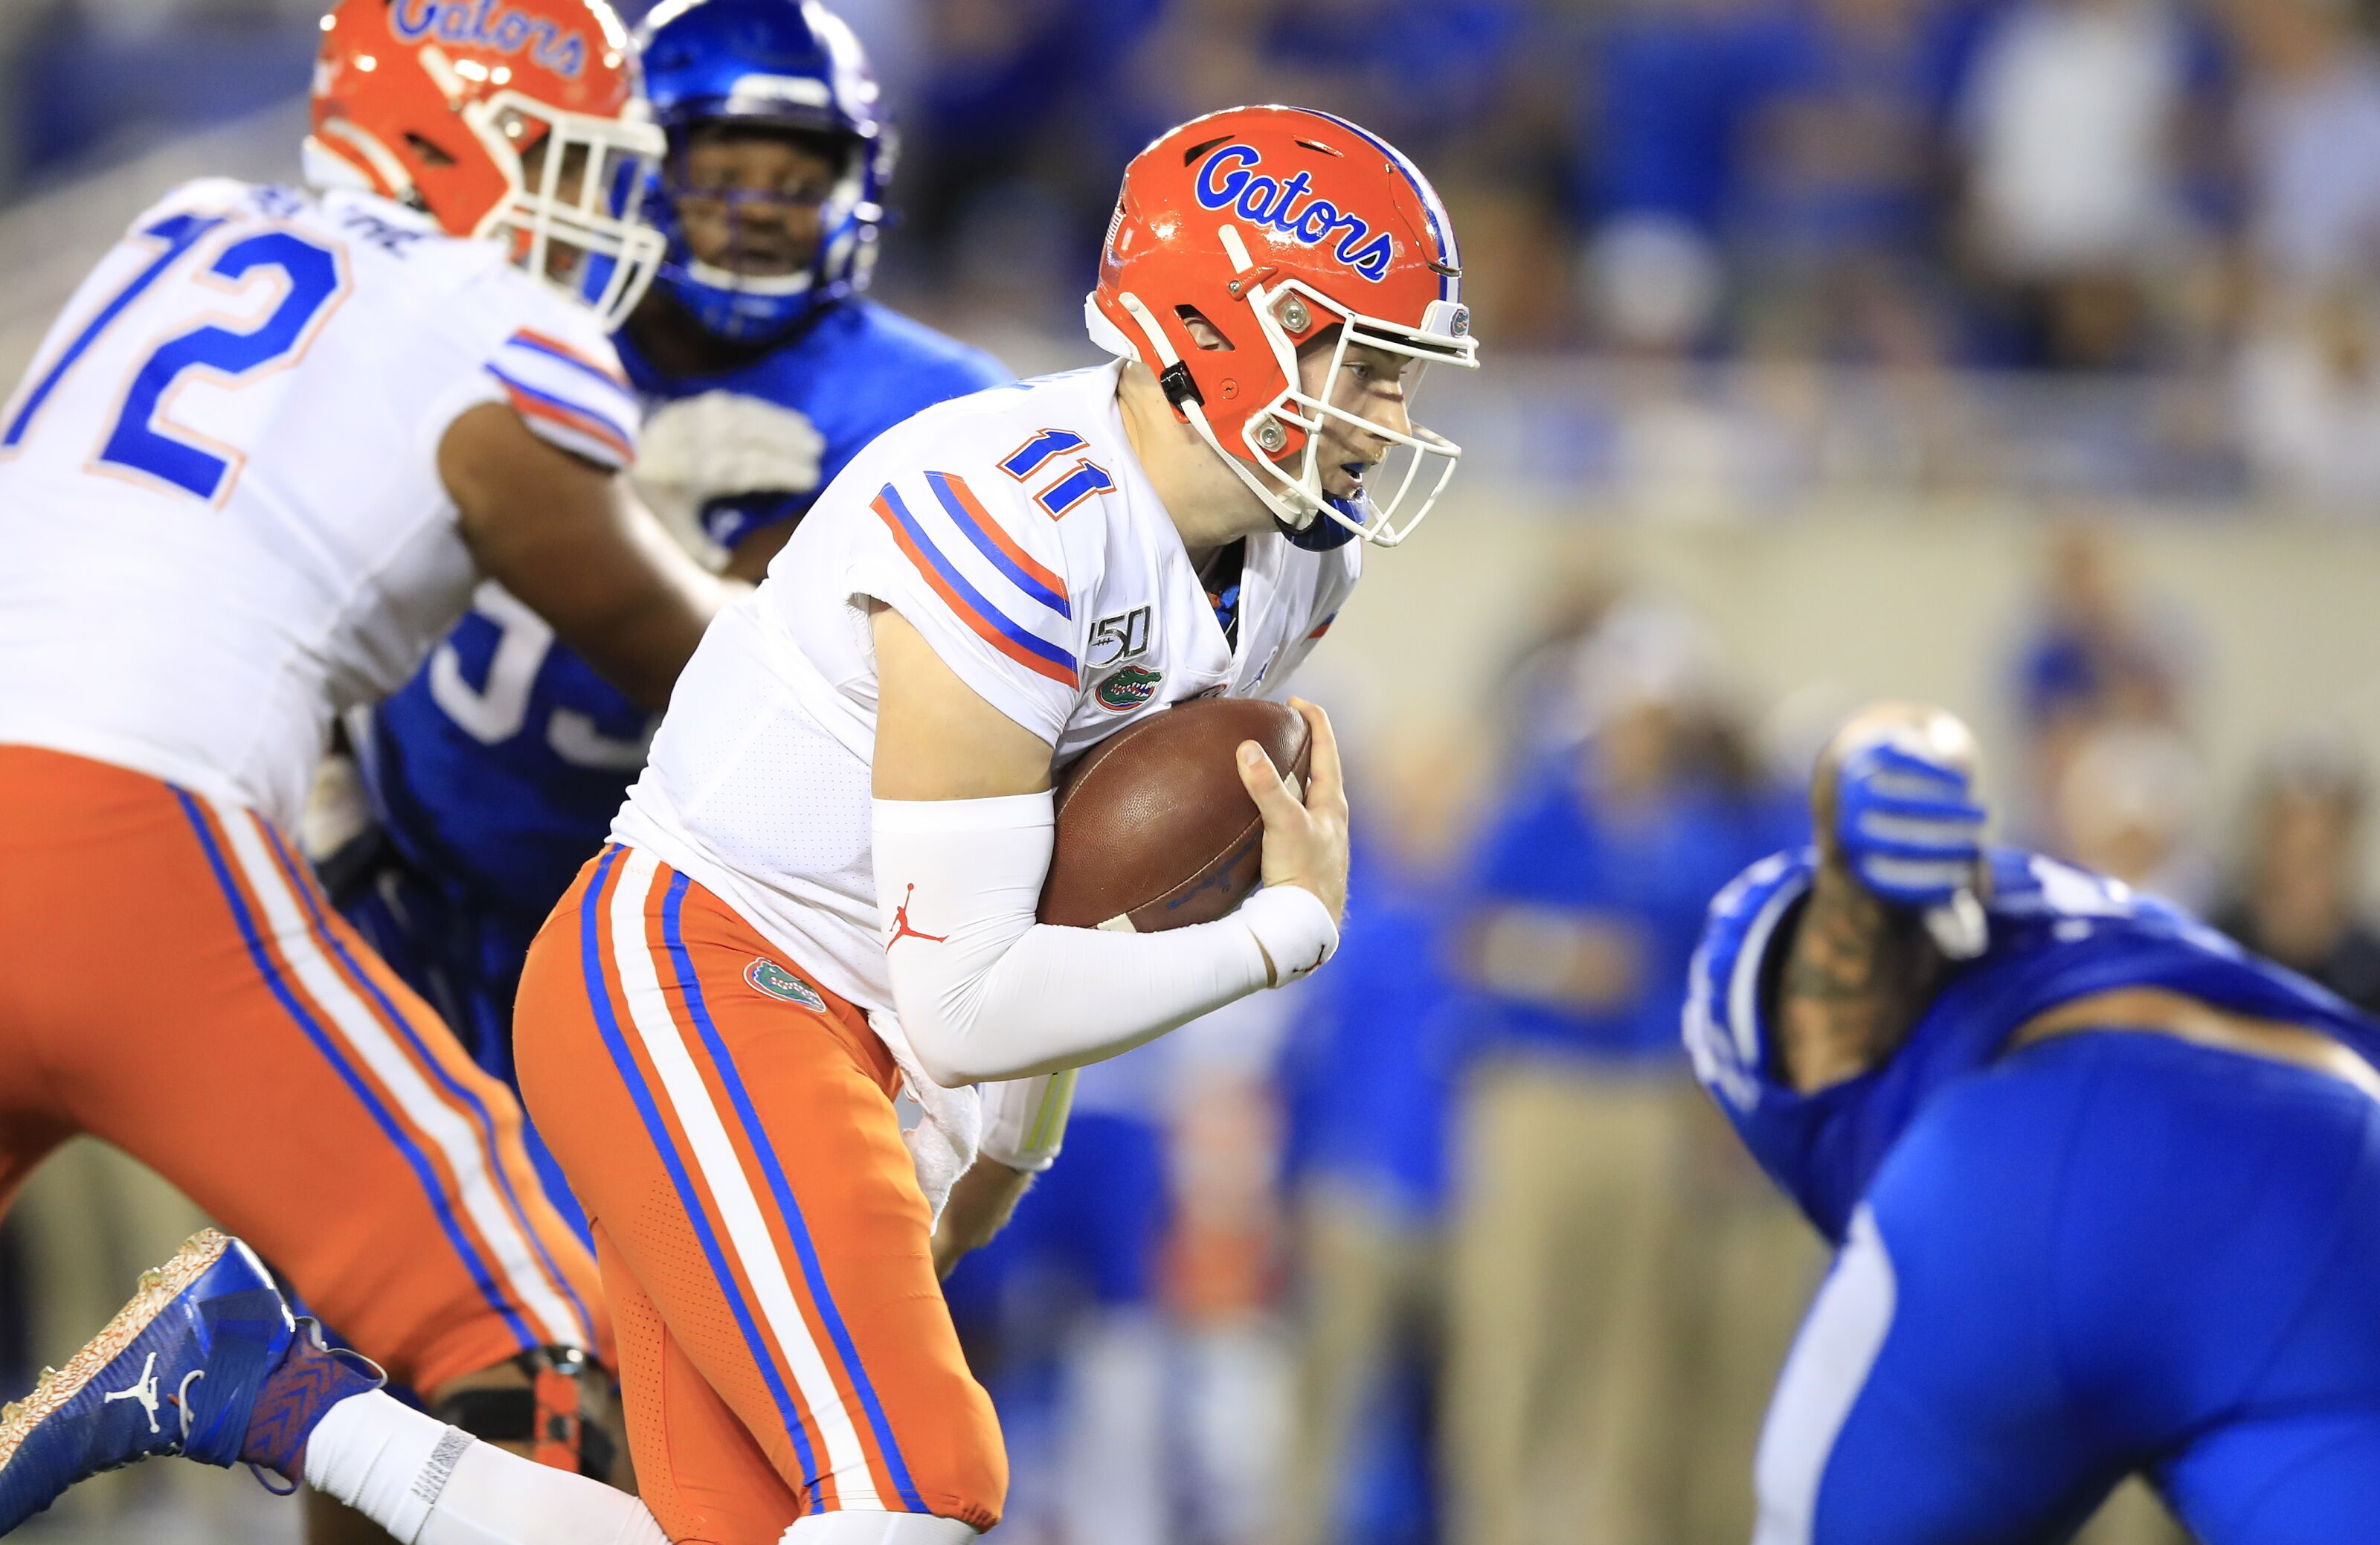 Florida football: Questions about the Gators without Feleipe Franks